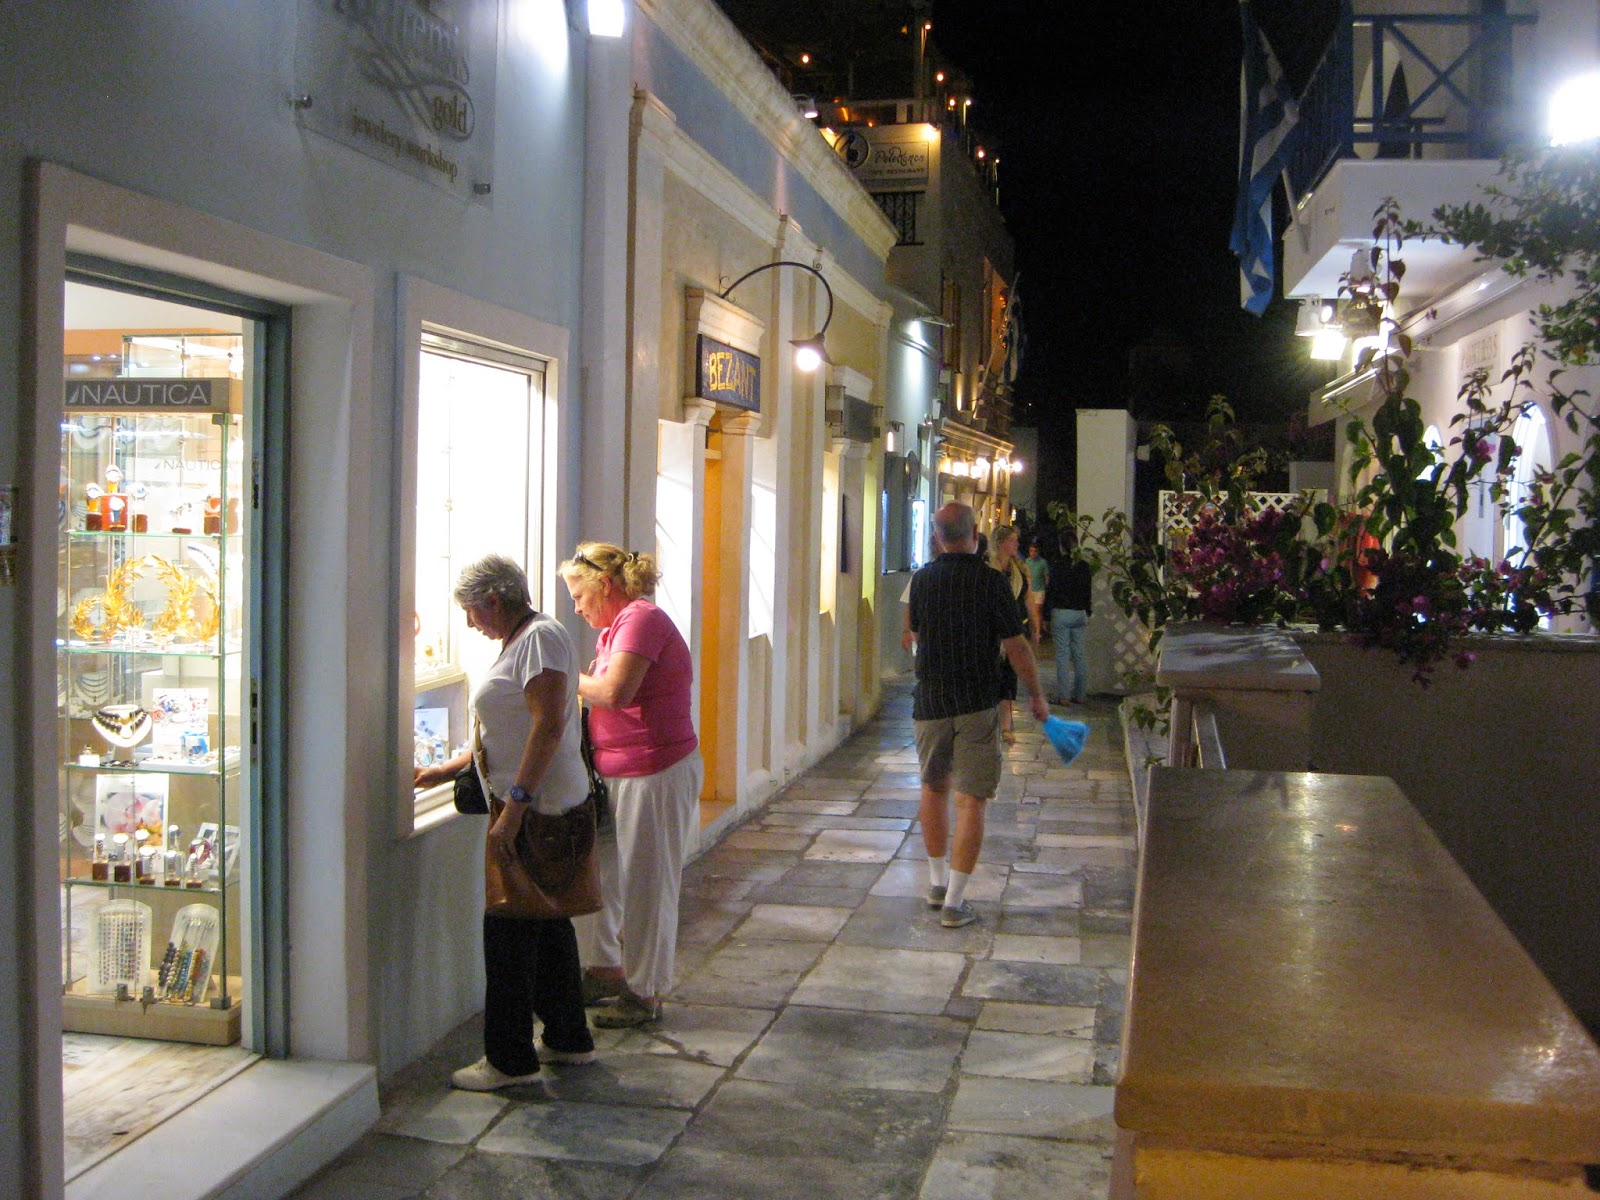 Santorini - Shops and restaurants along the main walk way in Oia